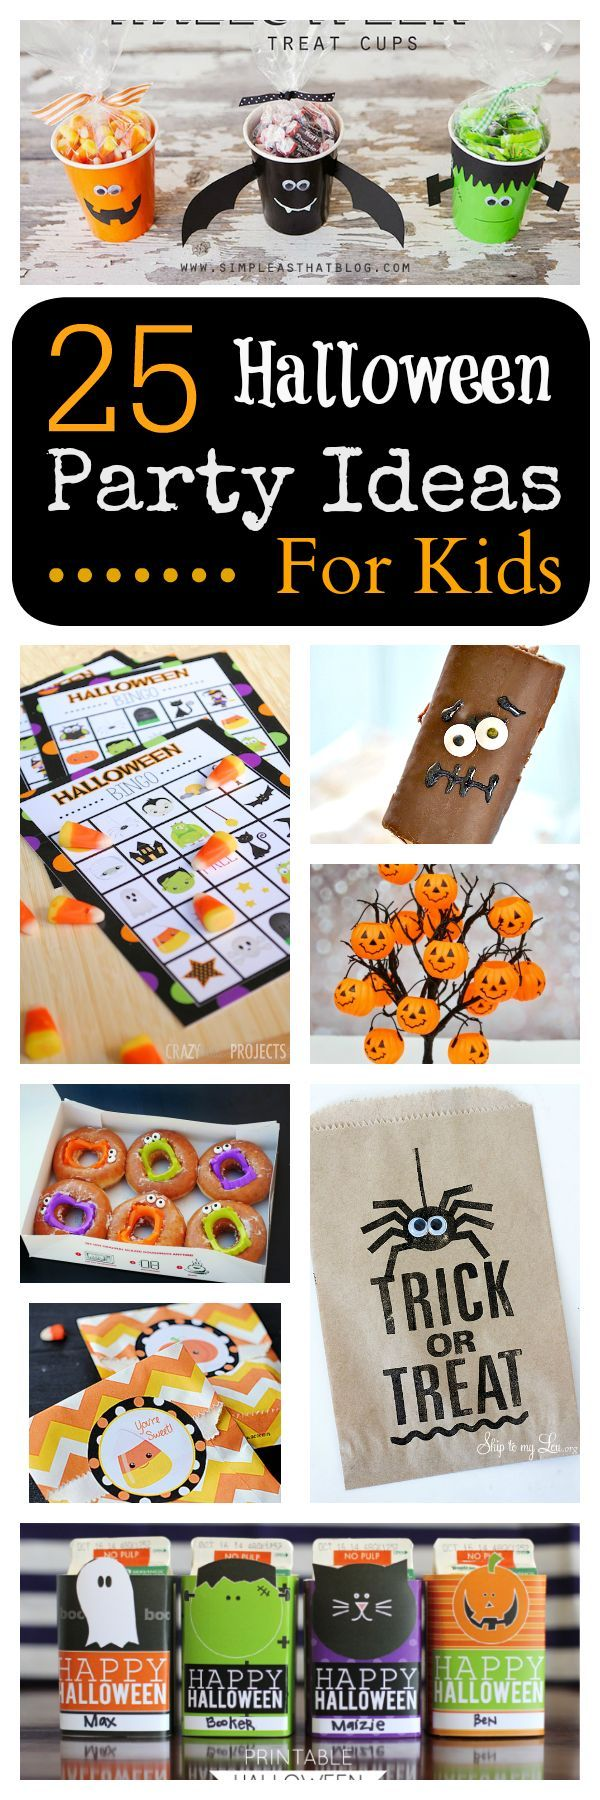 Schoolhalloween Halloweenpartyideas For